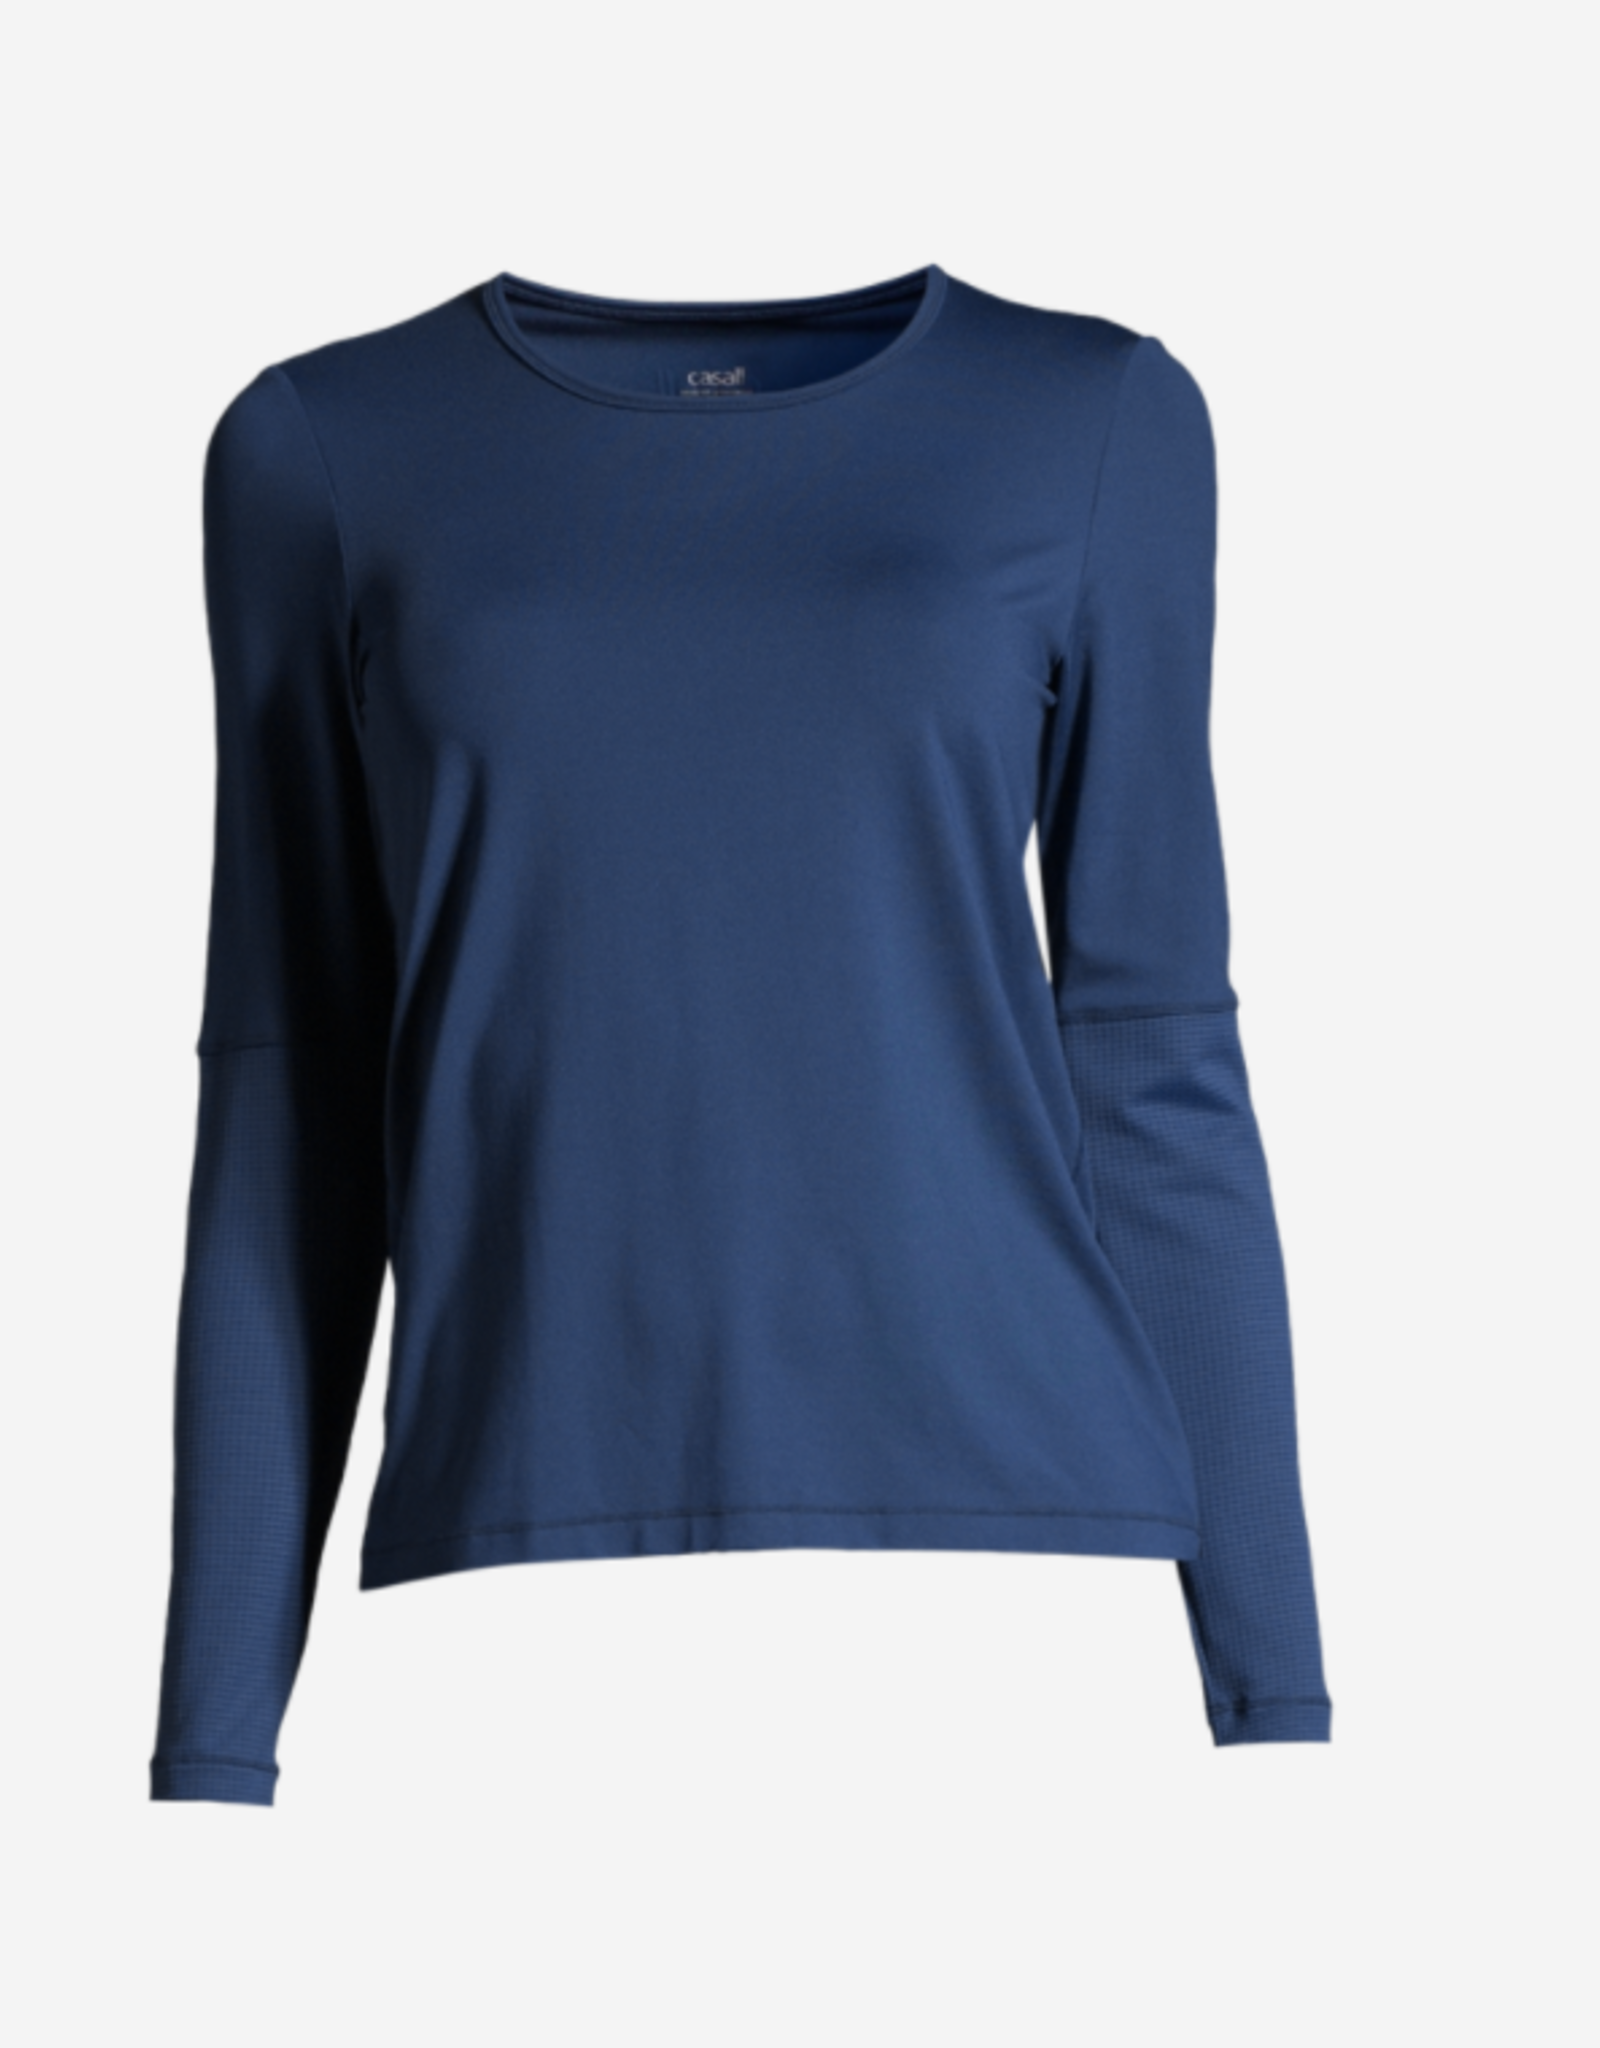 Casall Iconic long sleeve dames (ref 20452)